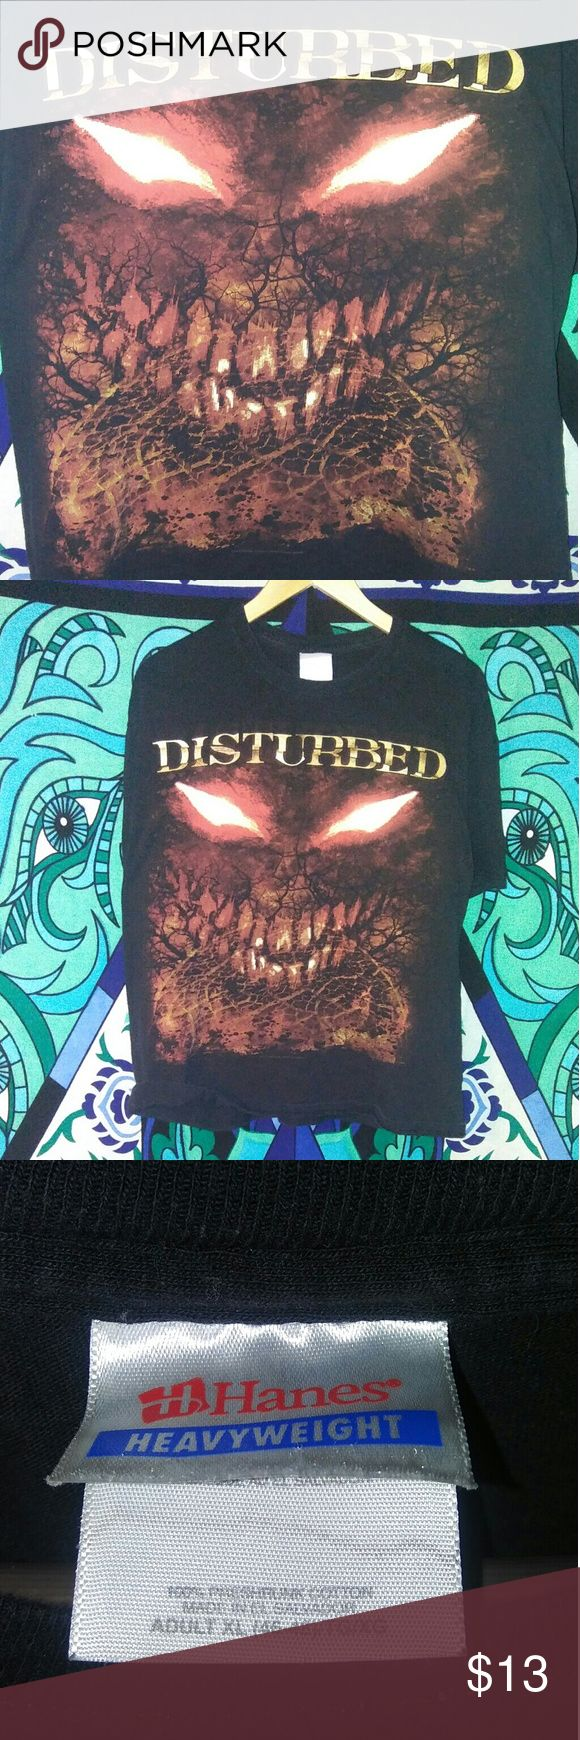 Disturbed band t shirt This is a t-shirt from a show put on by the band Disturbed disturbed Shirts Tees - Short Sleeve